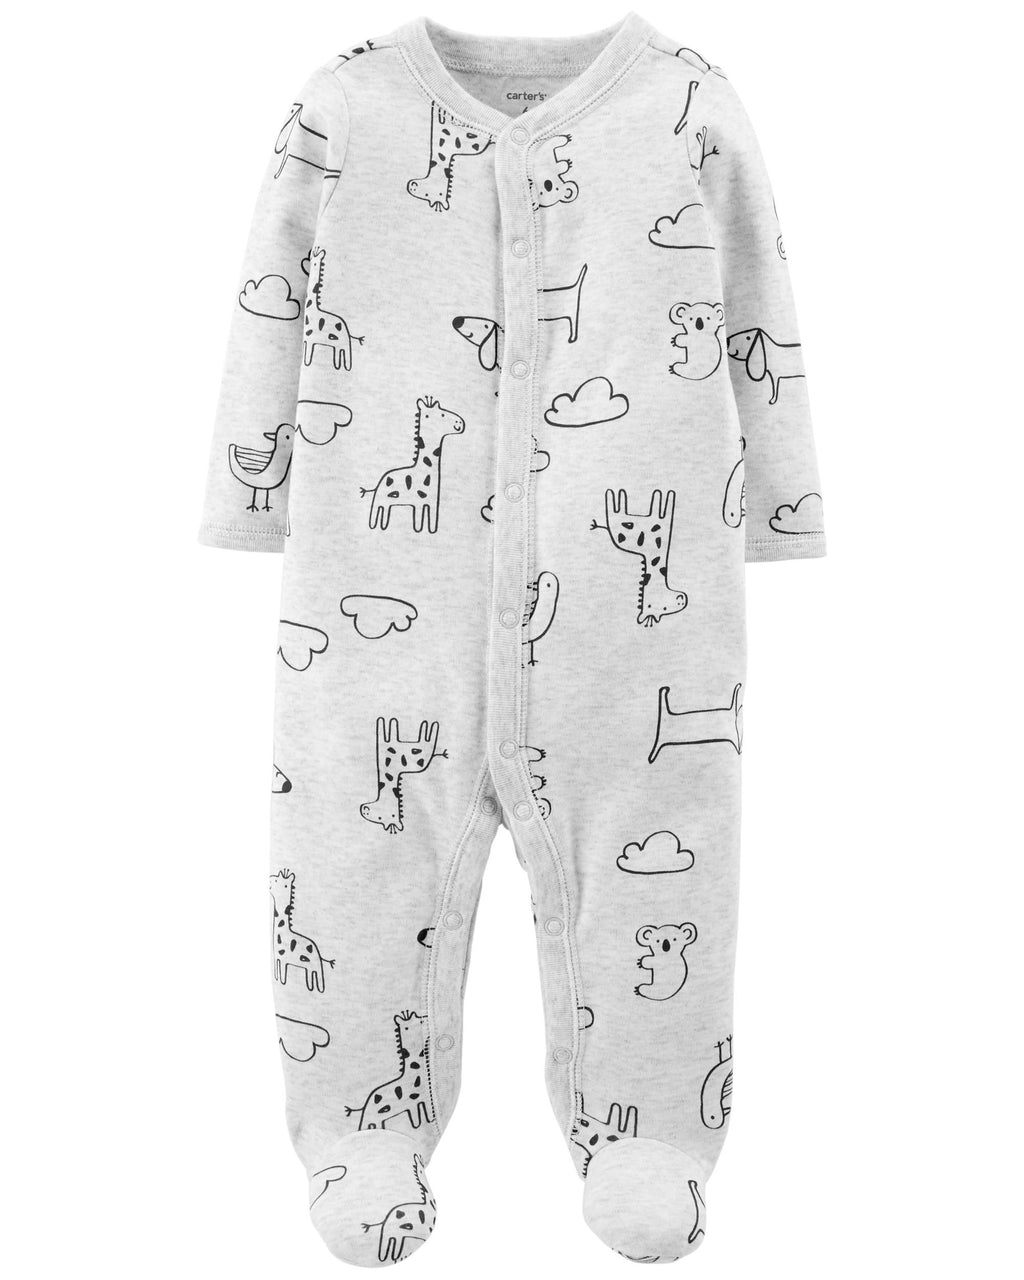 Enterito CARTERS Animal Snap-Up Cotton Sleep & Play